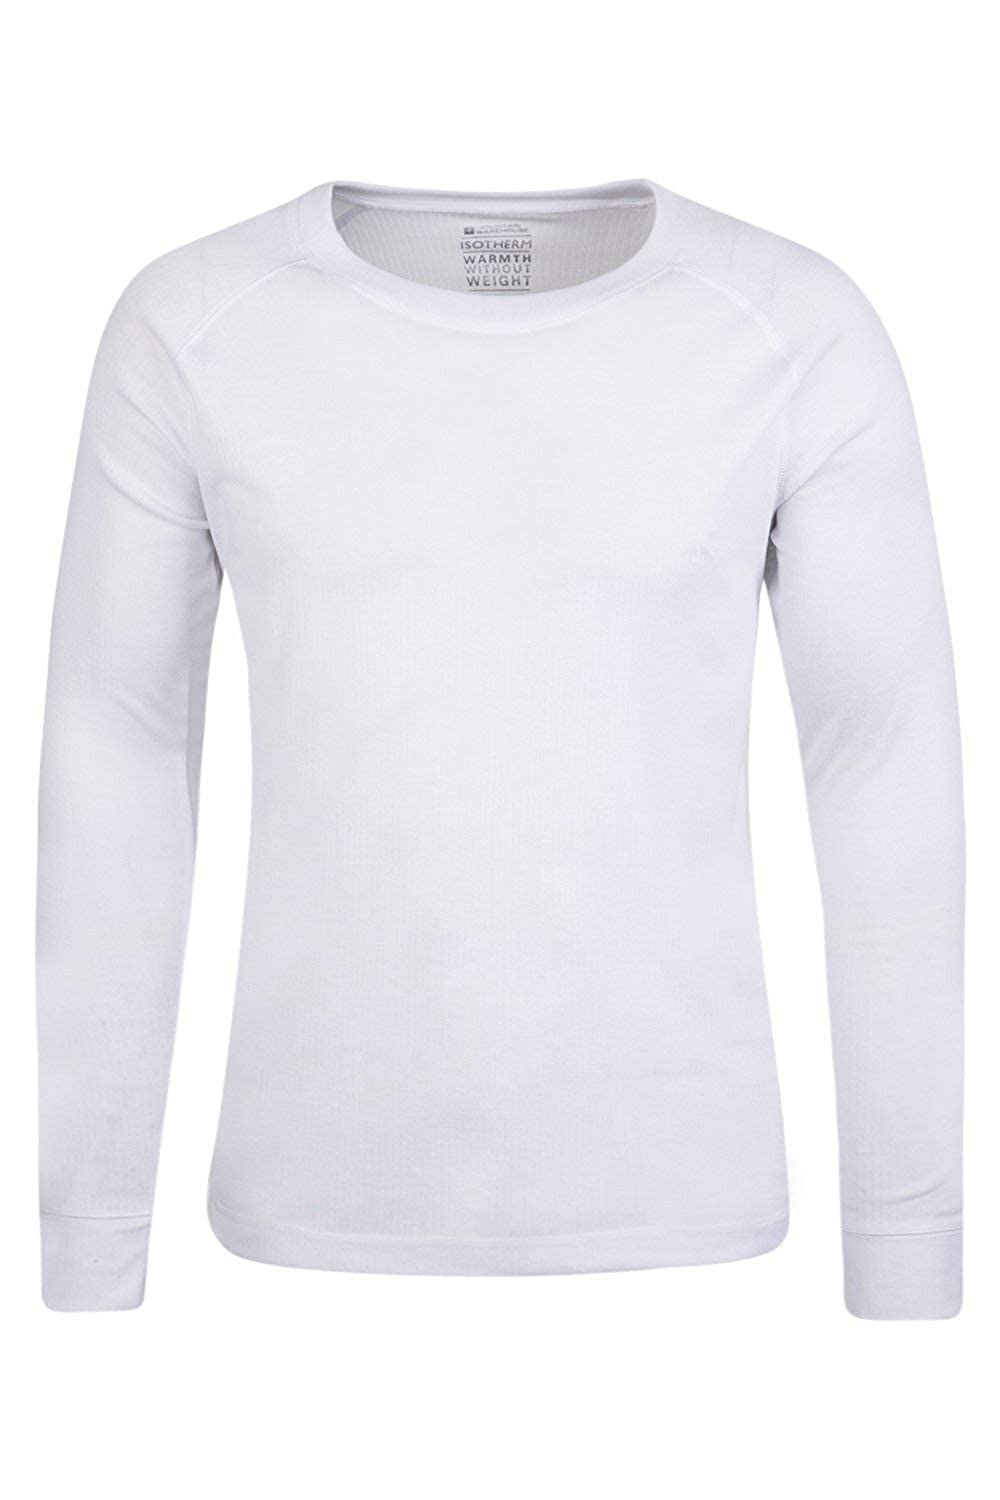 4f2e82defb0 Mountain Warehouse Talus Mens Thermal Baselayer Top - Quick Drying Winter  Jumper